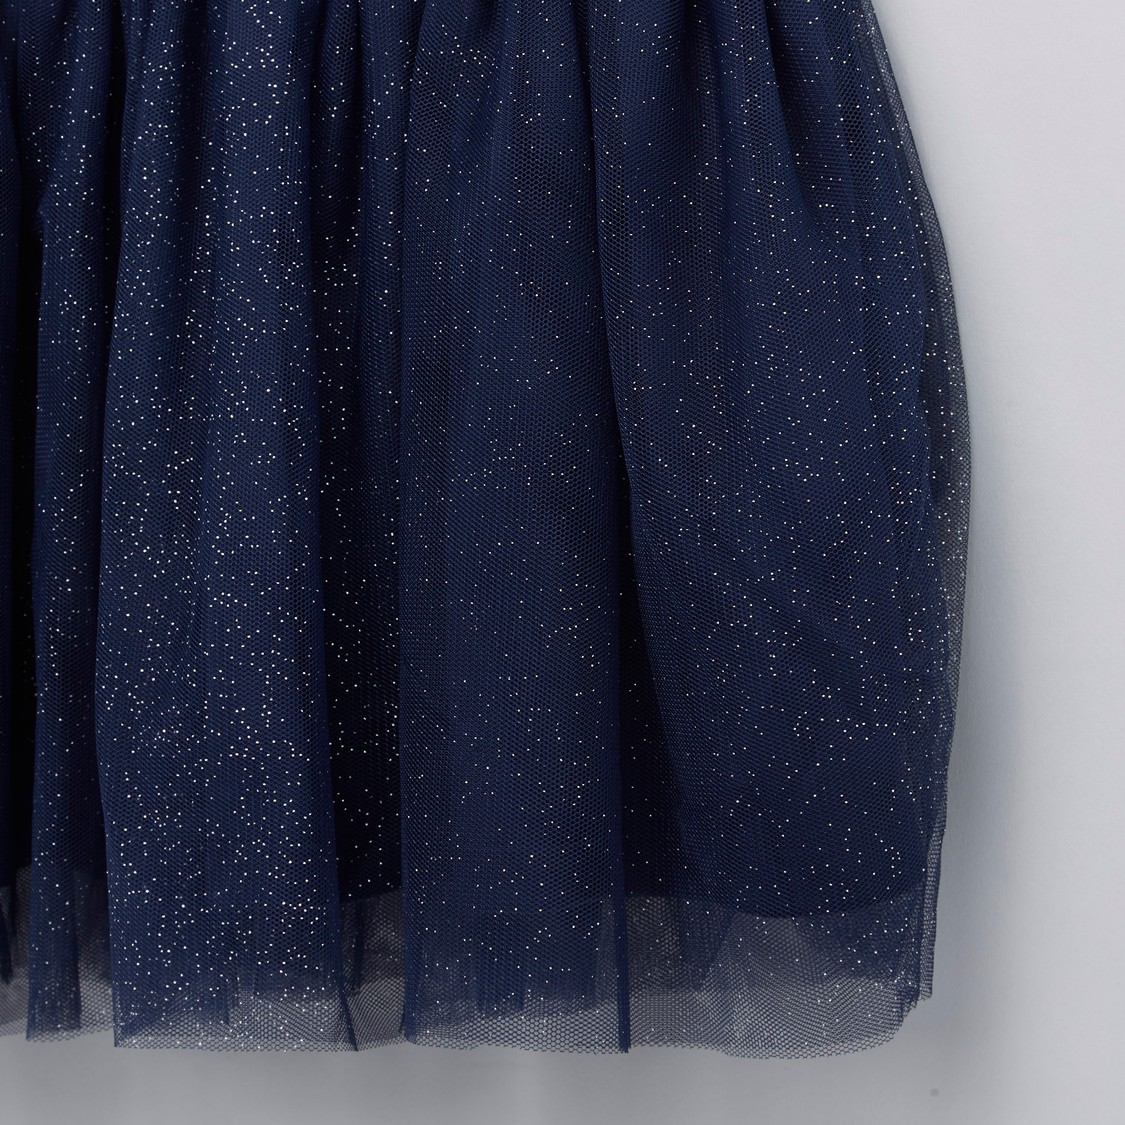 Sequin Detail Dress with Mesh Ruffle Detail